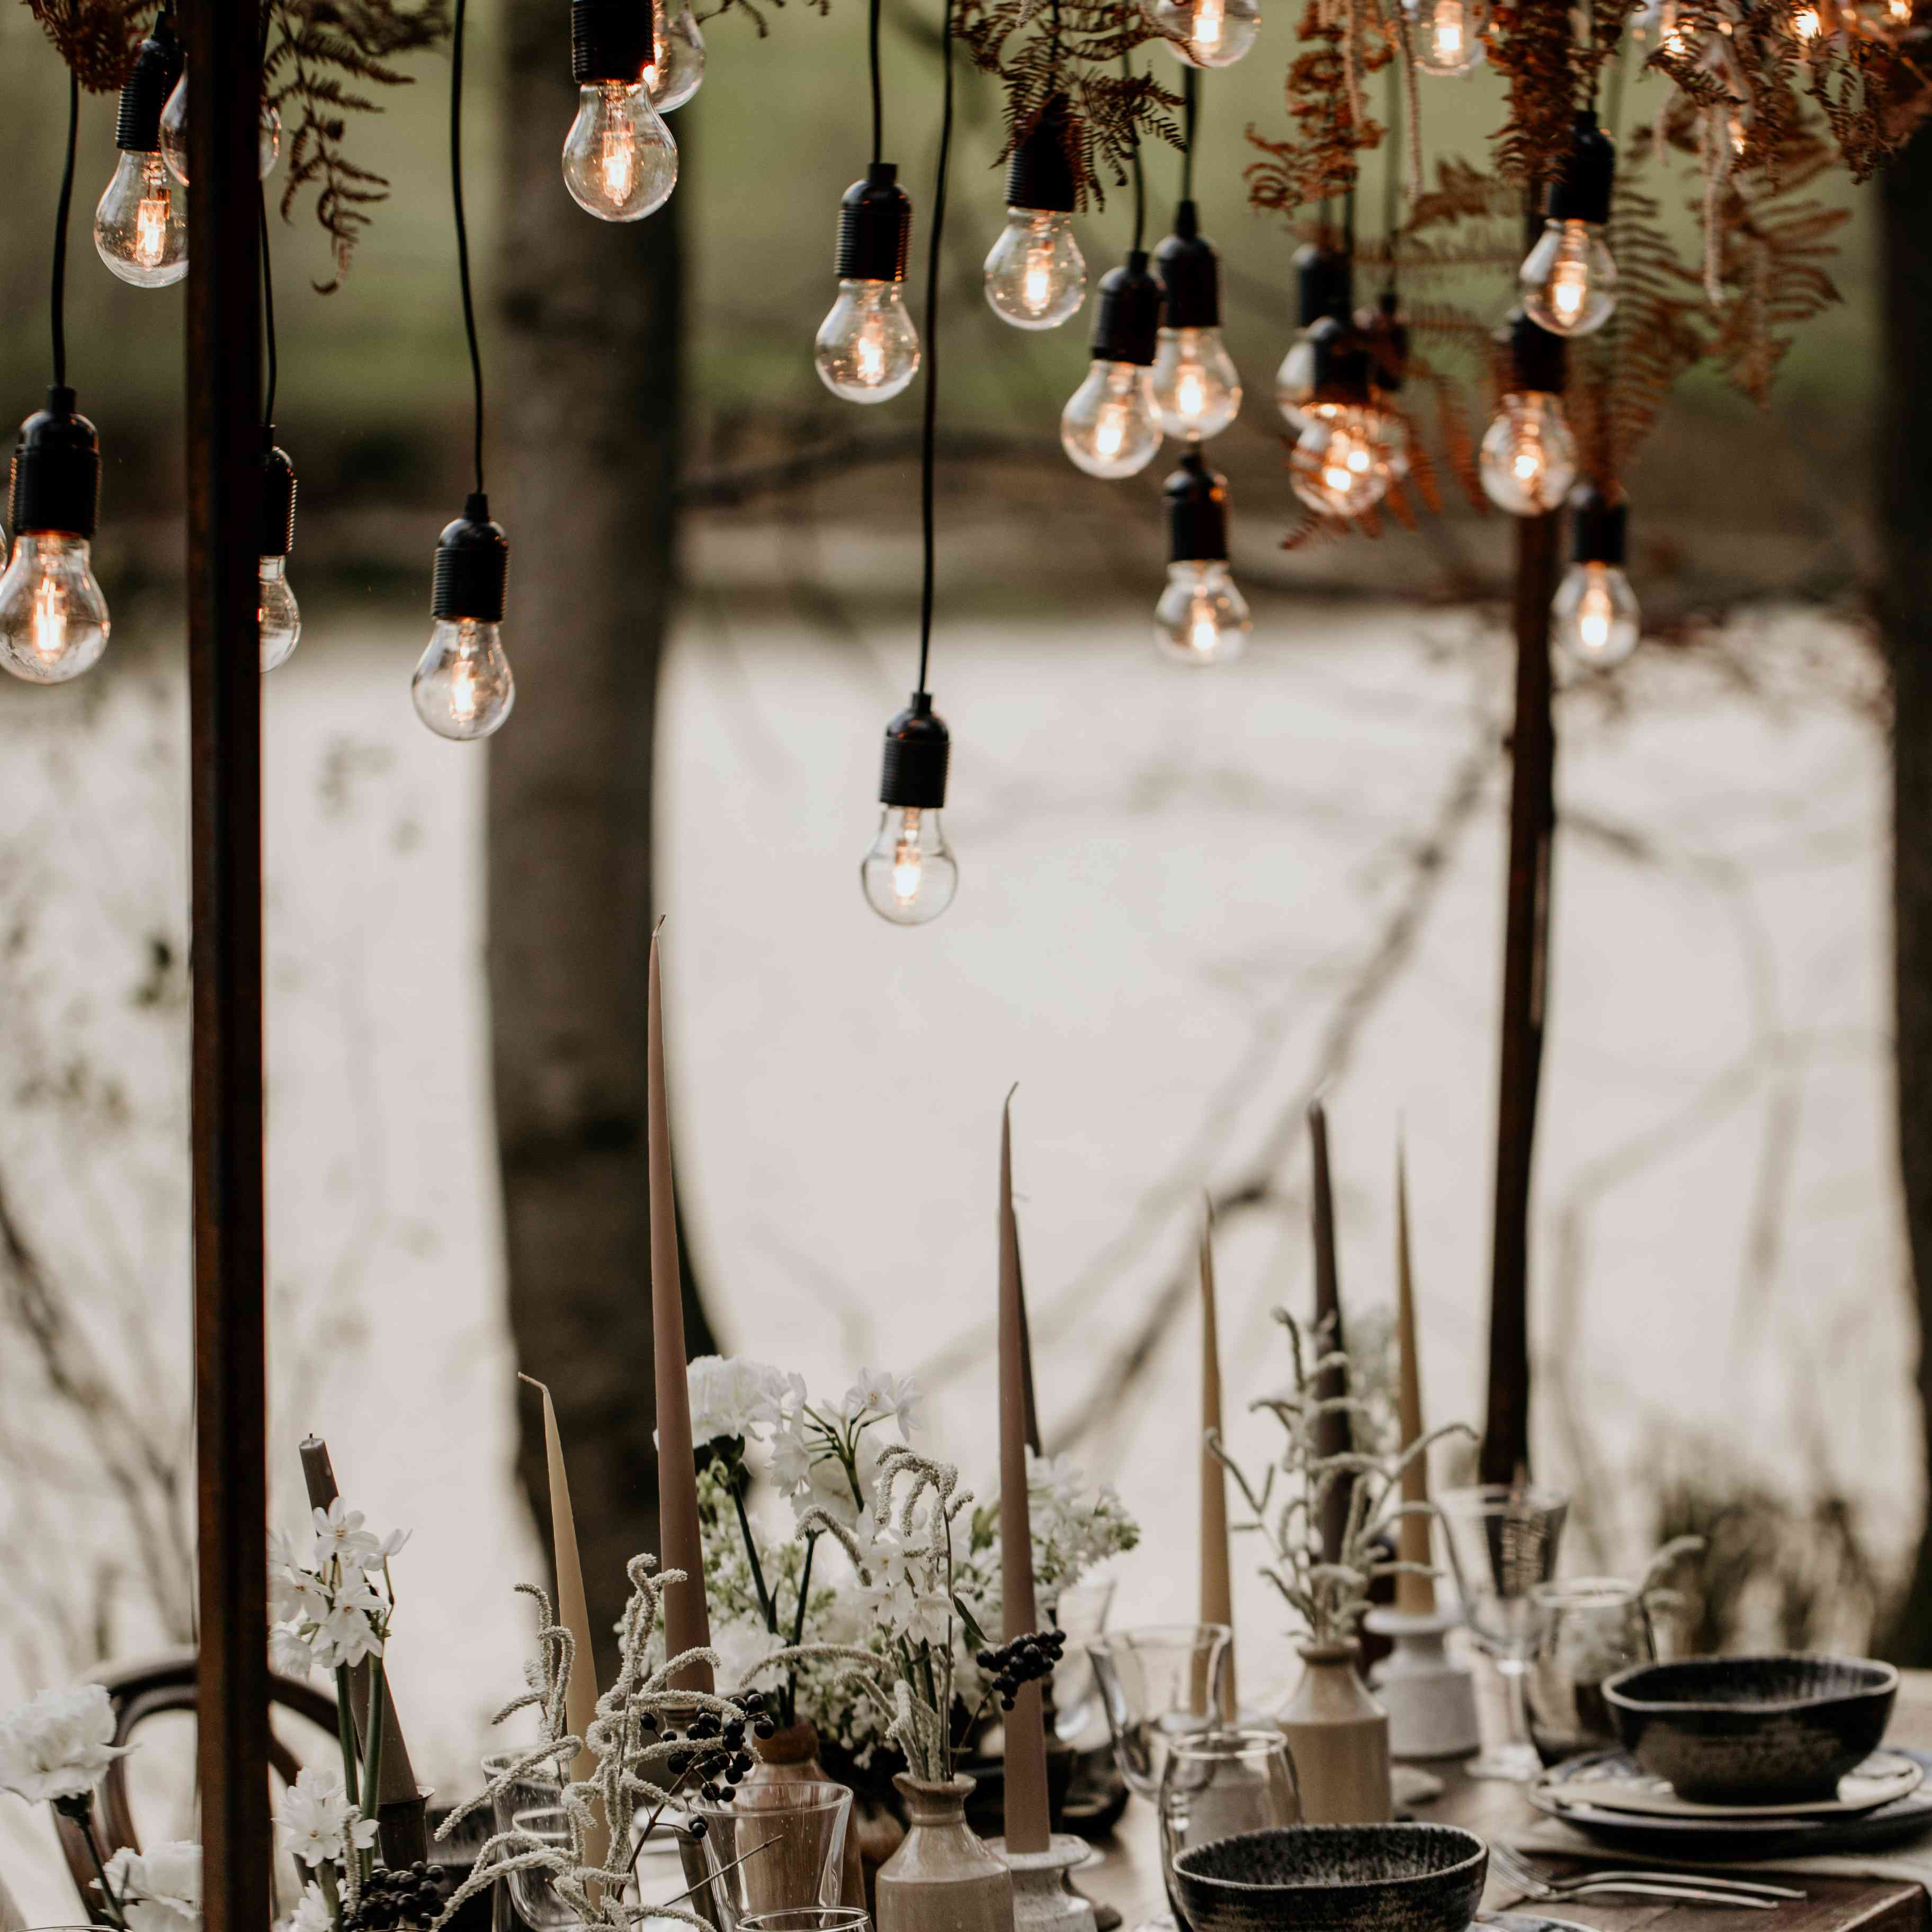 Hanging lights above table